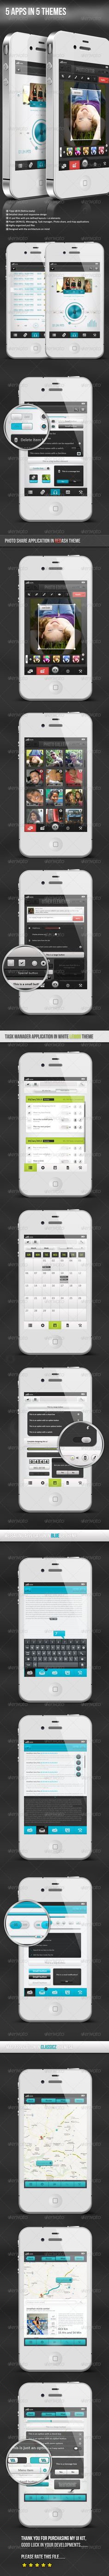 5 IOS Apps in 5 Fascinating Themes - UI Kit - GraphicRiver Item for Sale